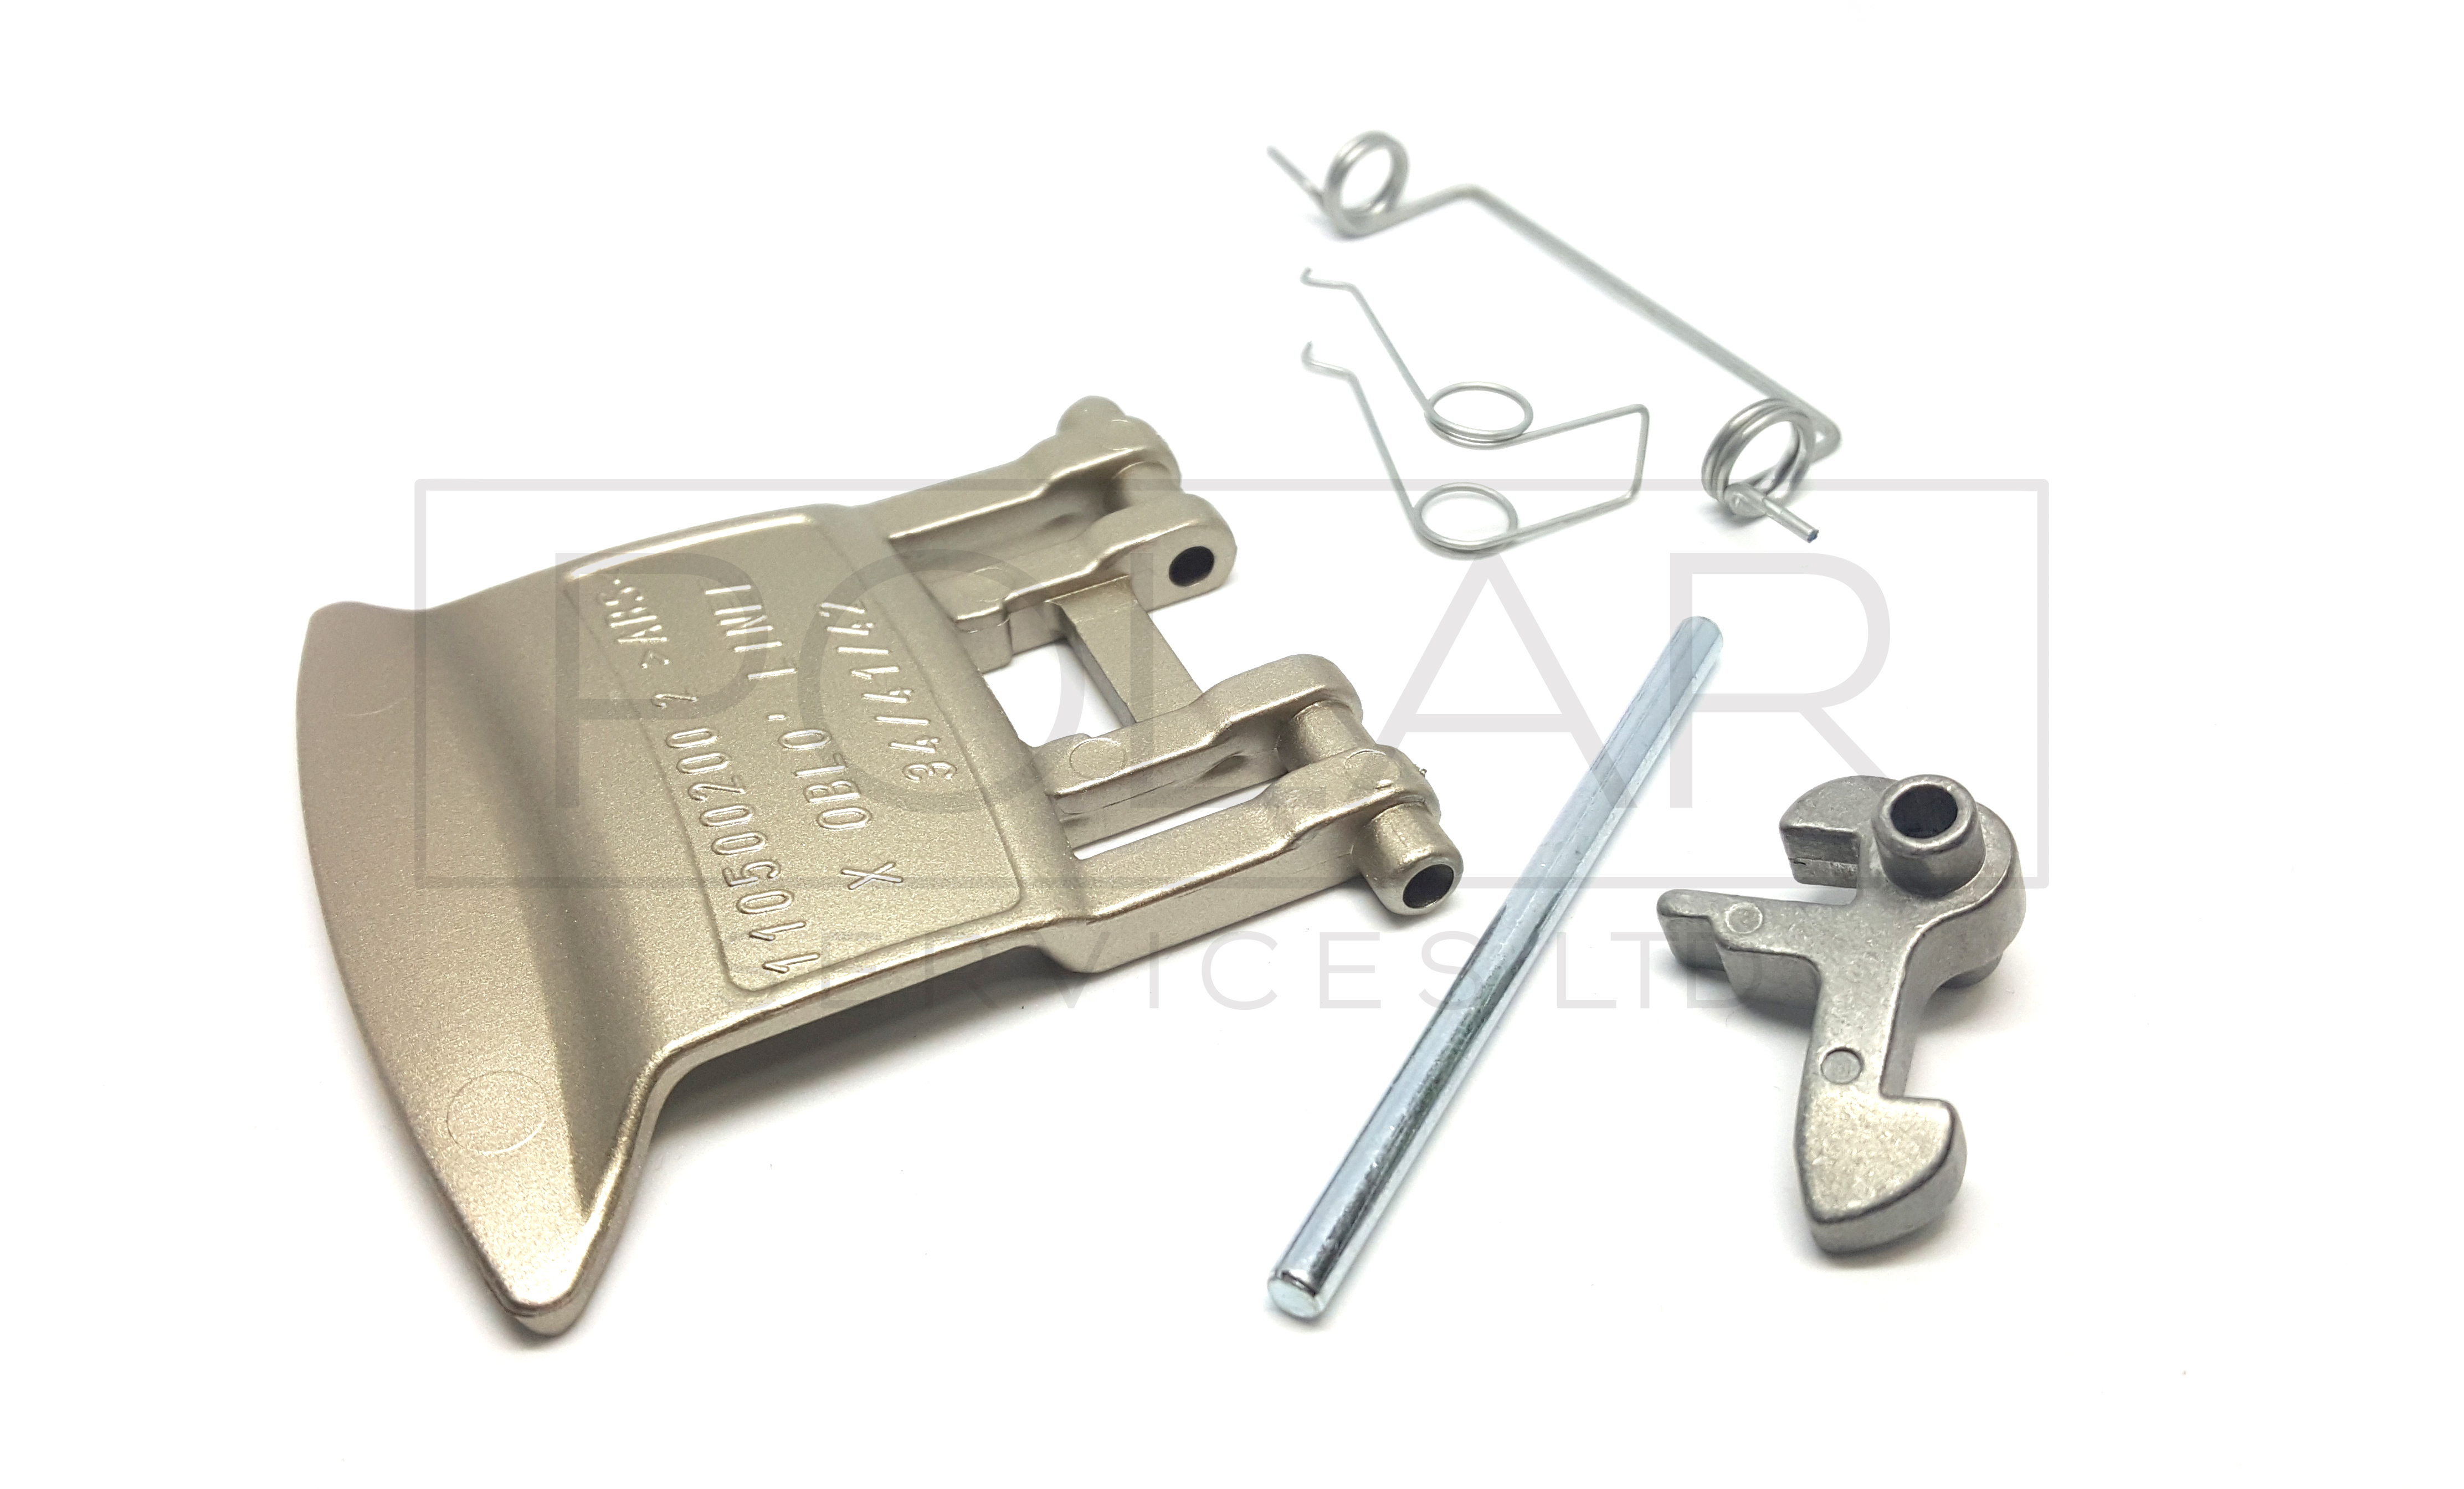 WASHING MACHINE DOOR HANDLE ARDO 651027753 Malta, 								Washing Machine Malta, Polar Services LTD Malta Malta